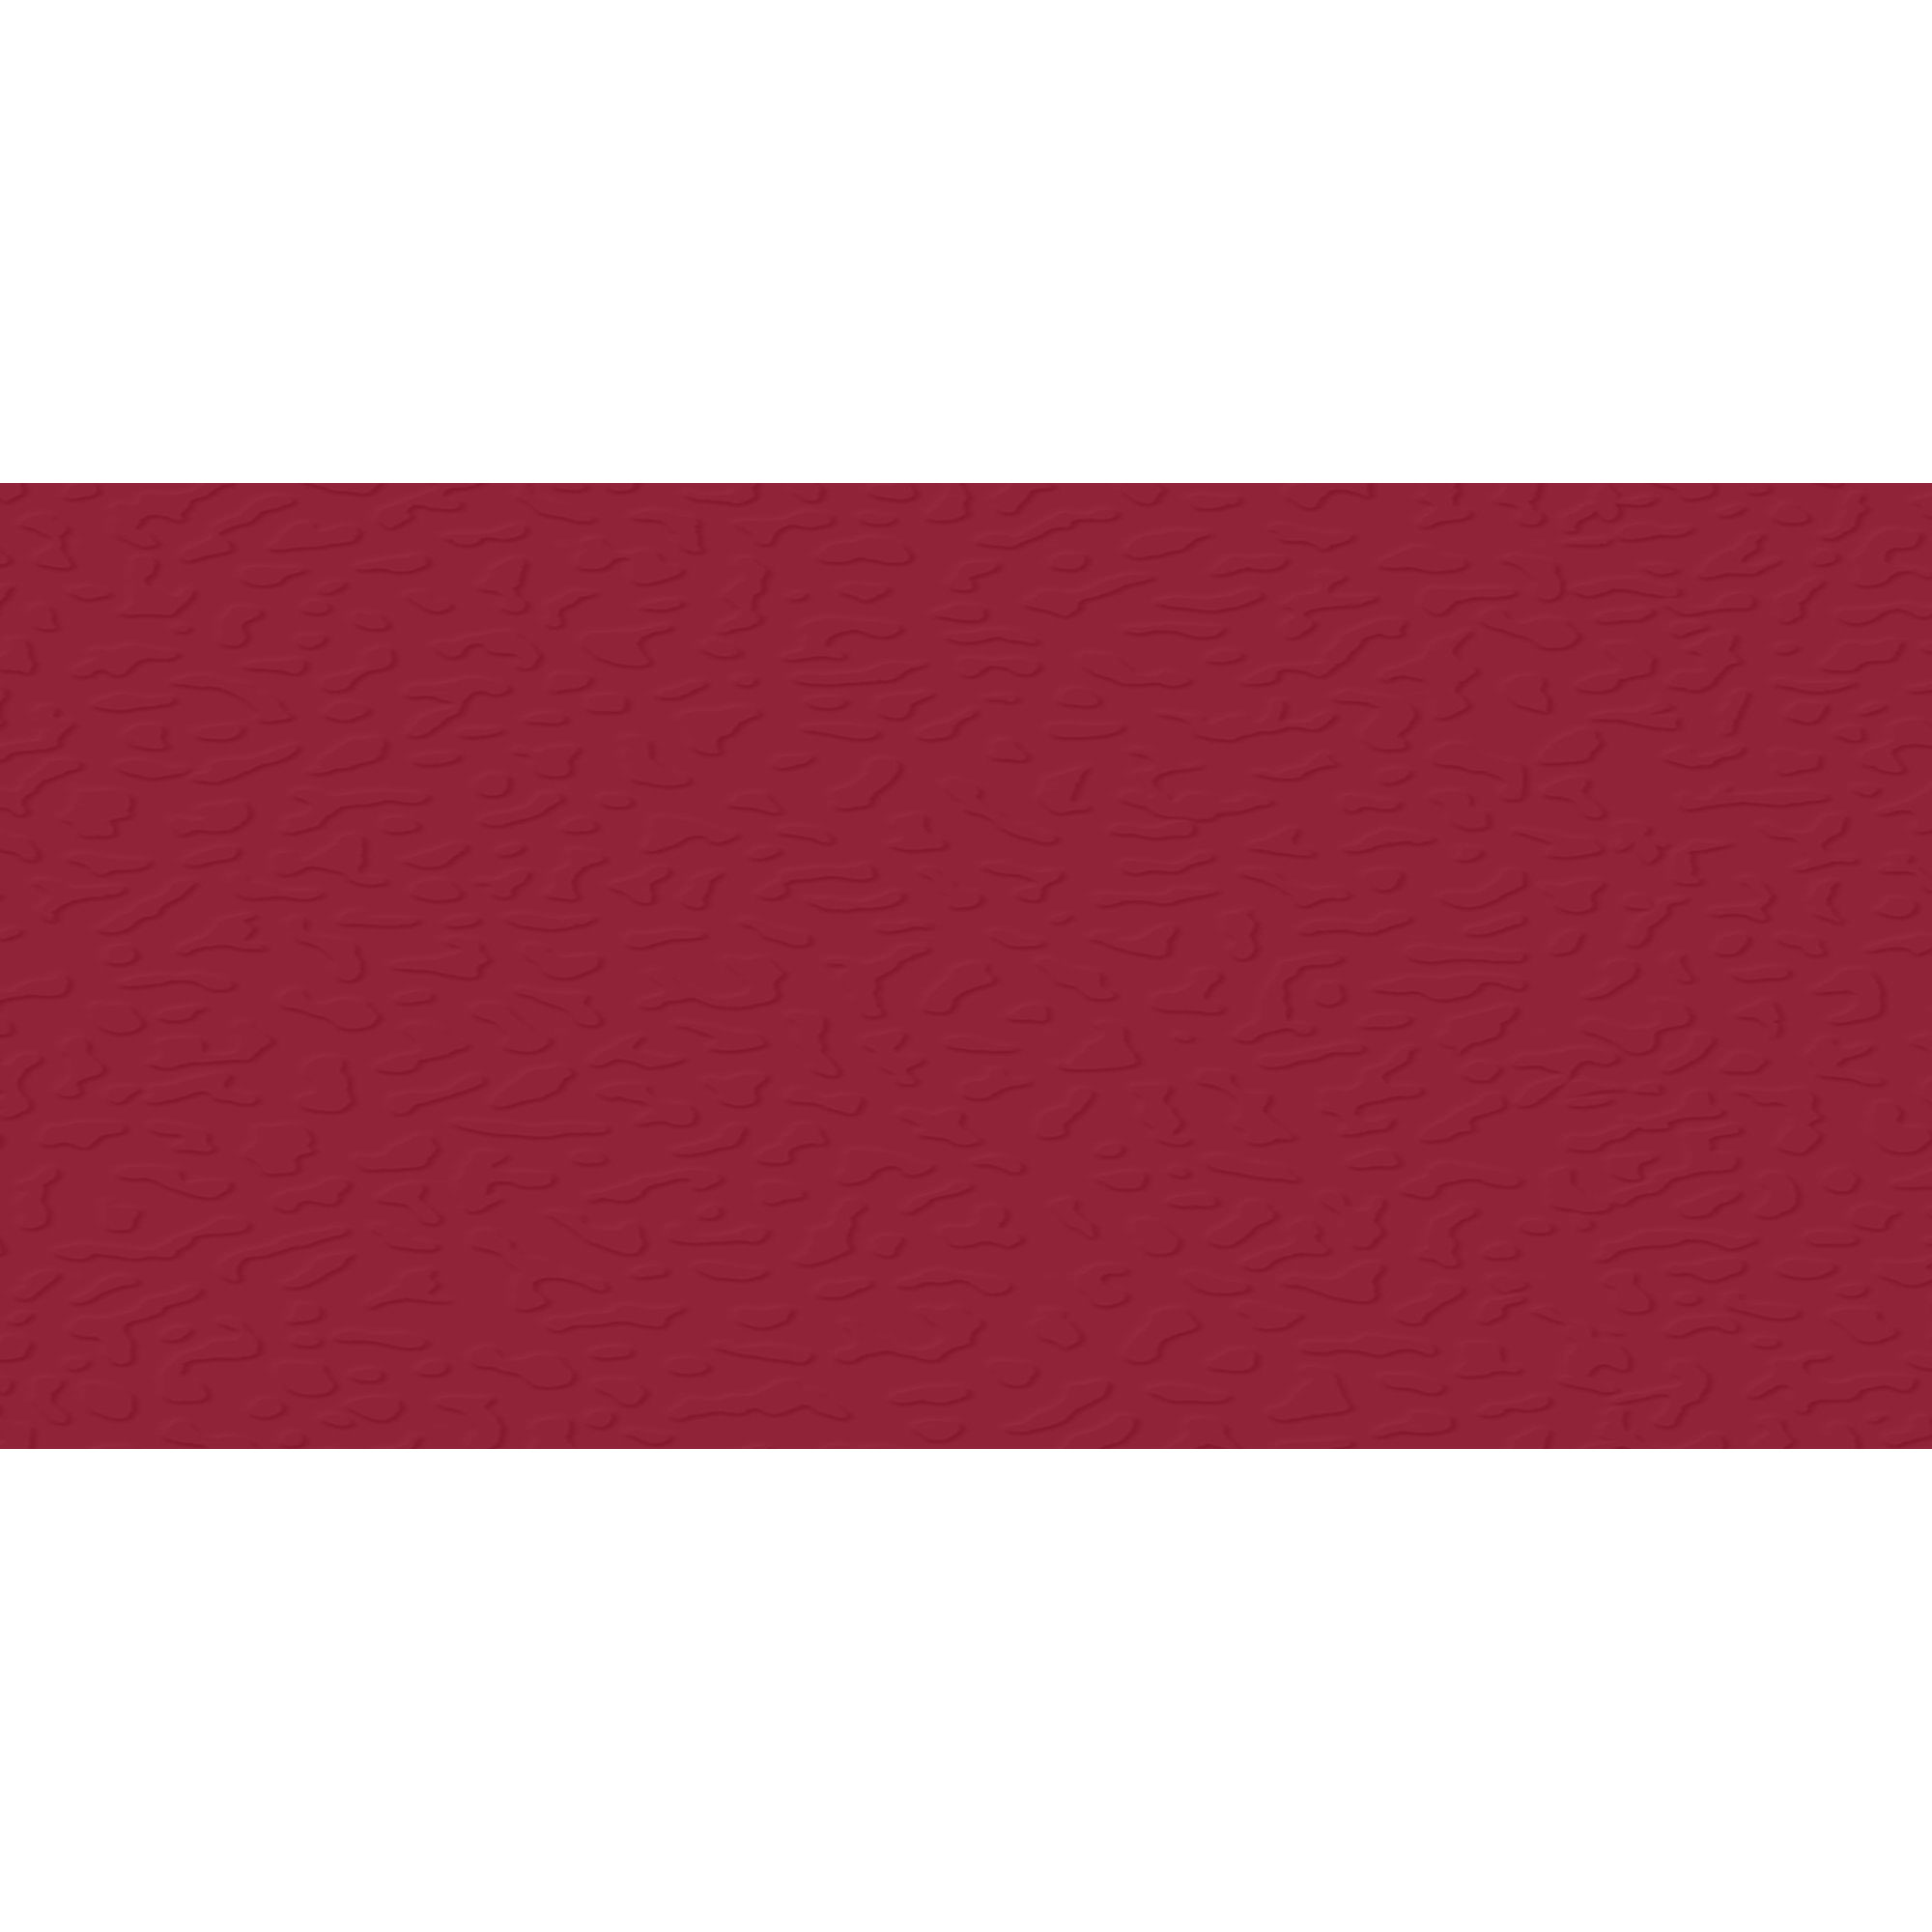 Roppe Designers Choice Textured 6 x 12 Red